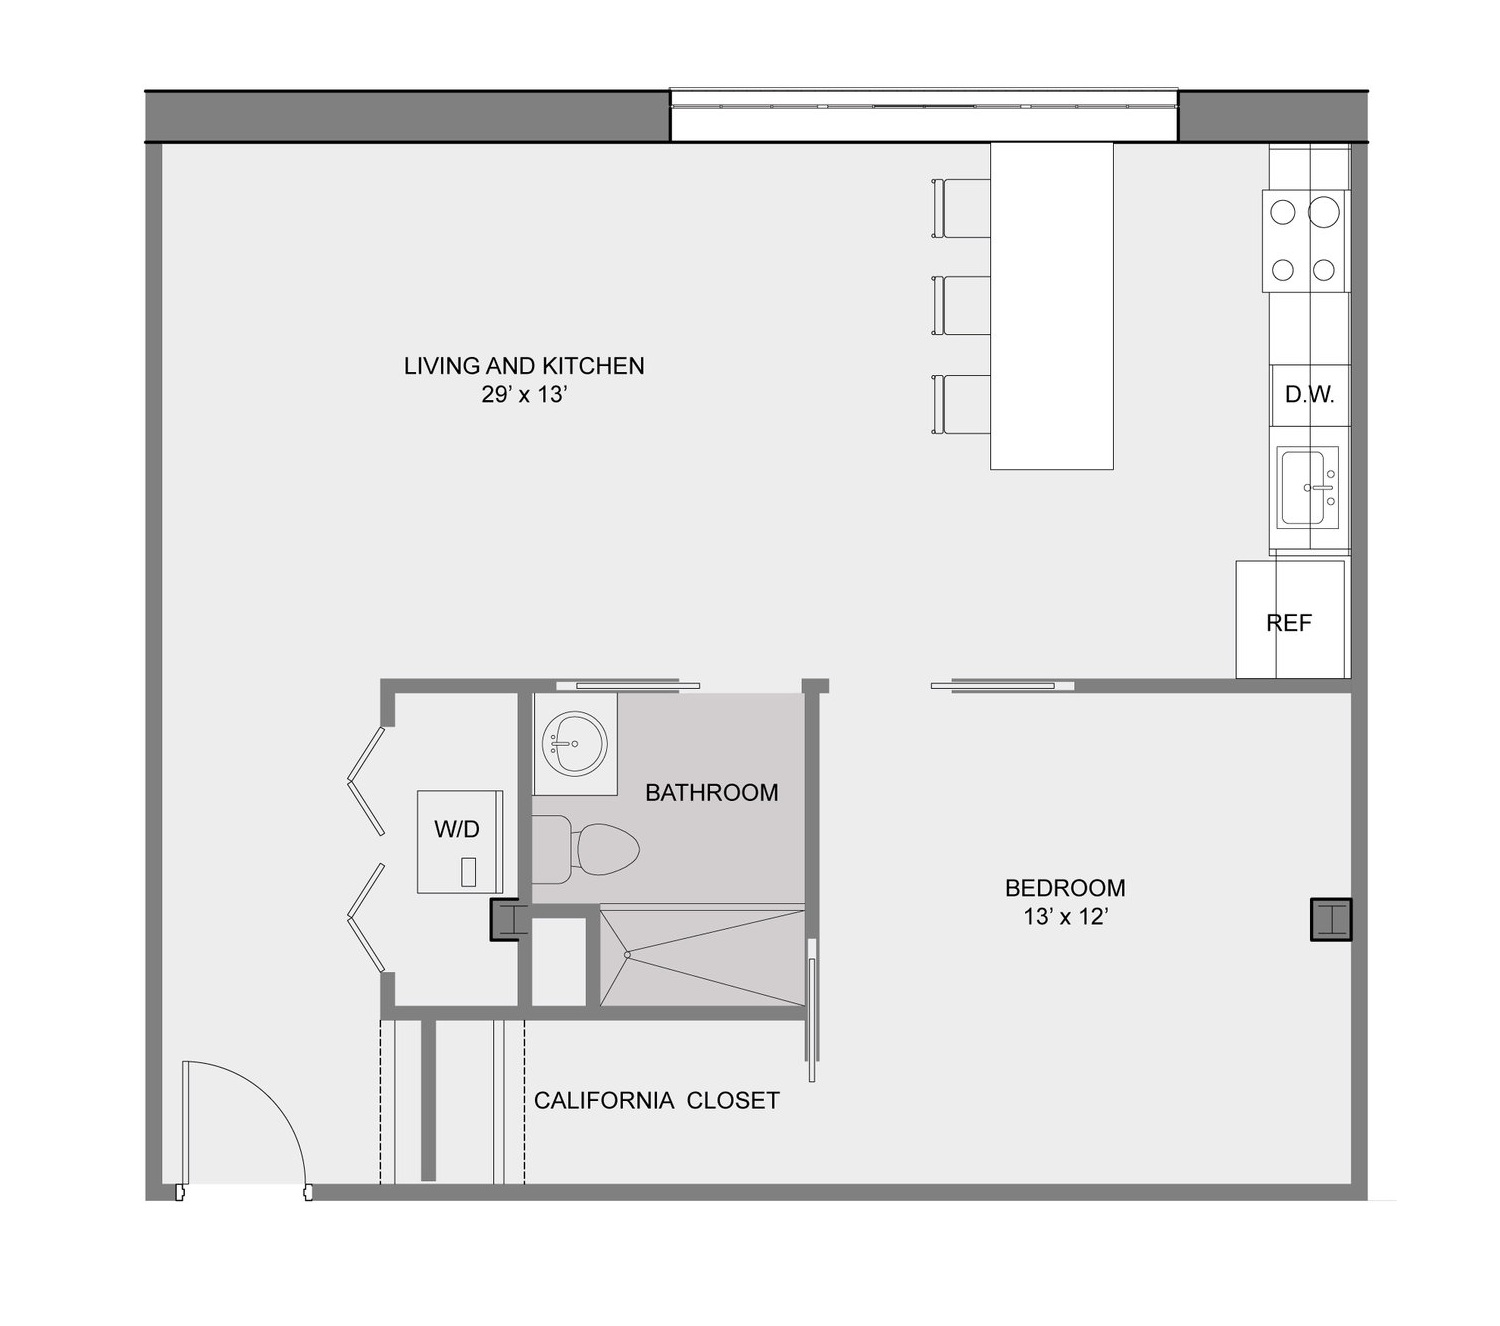 Ansco_G-+1+bedroom.jpg